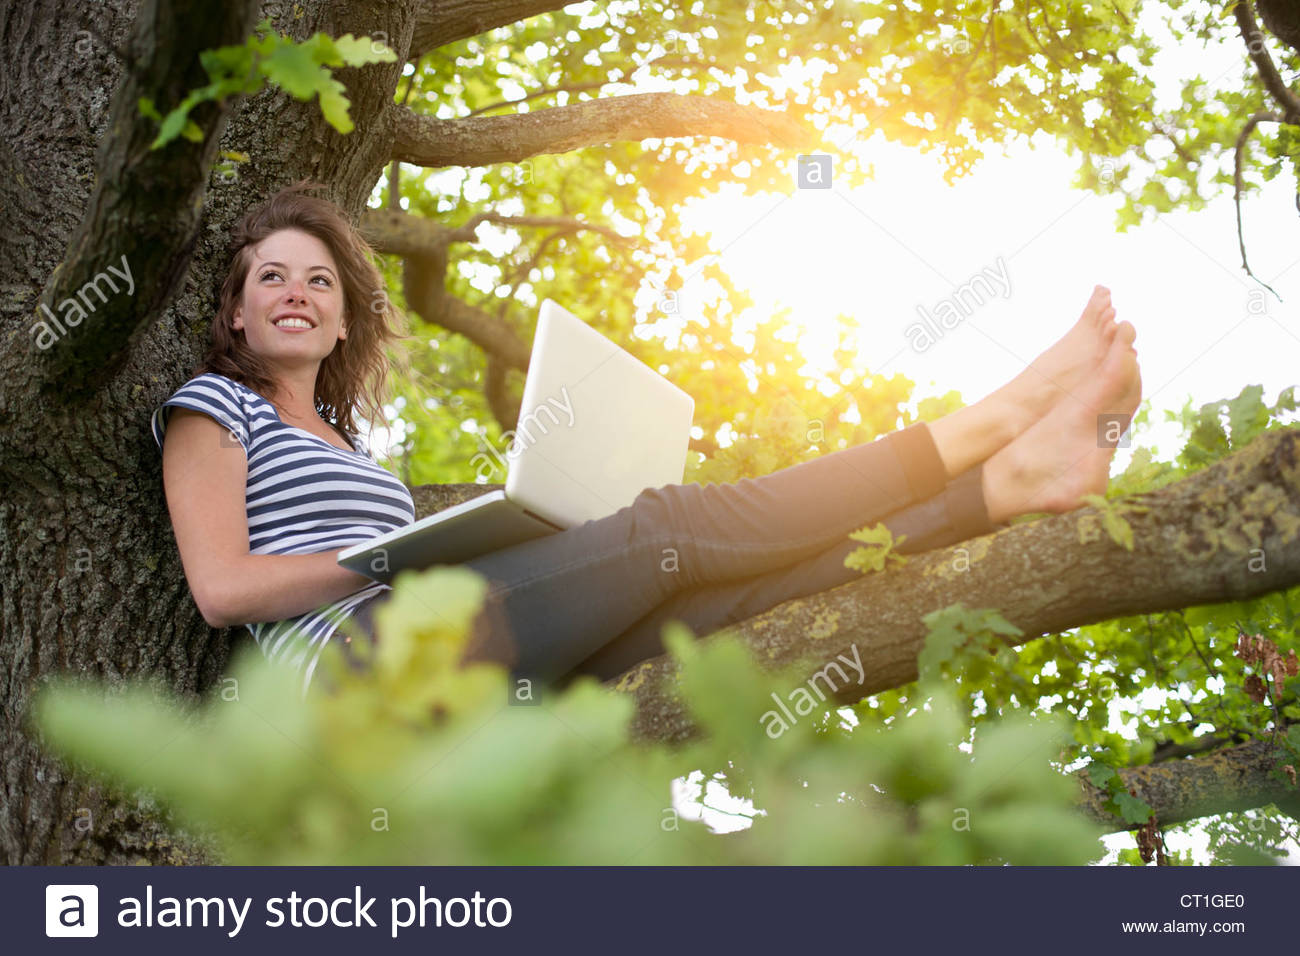 Smiling woman using laptop in tree Photo Stock